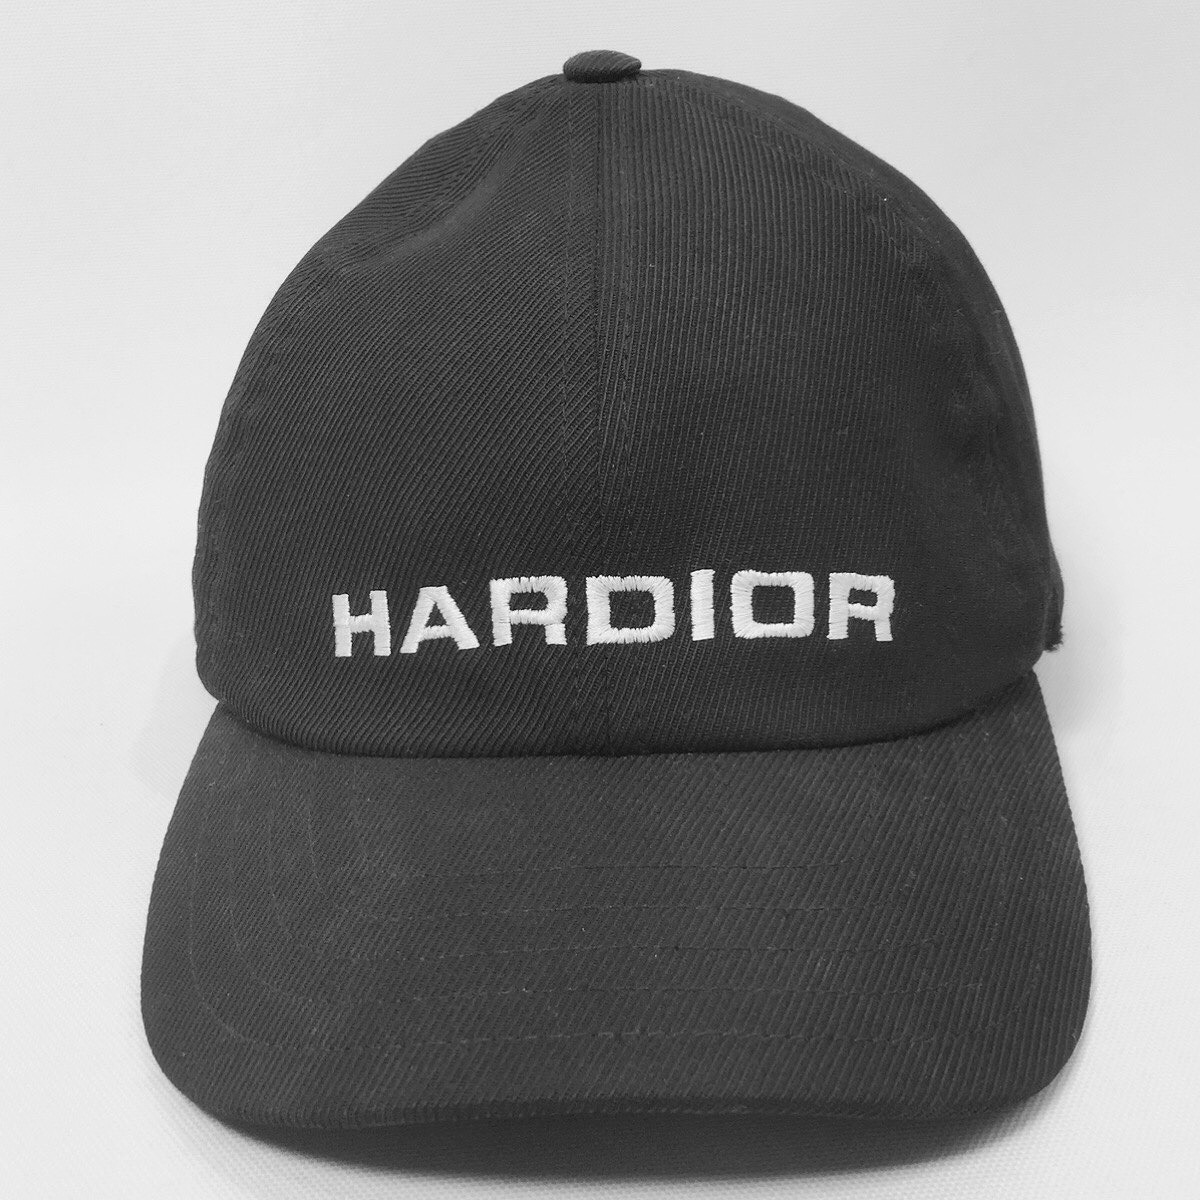 2017AW  HARDIOR  EMBROIDERY CAP is available from